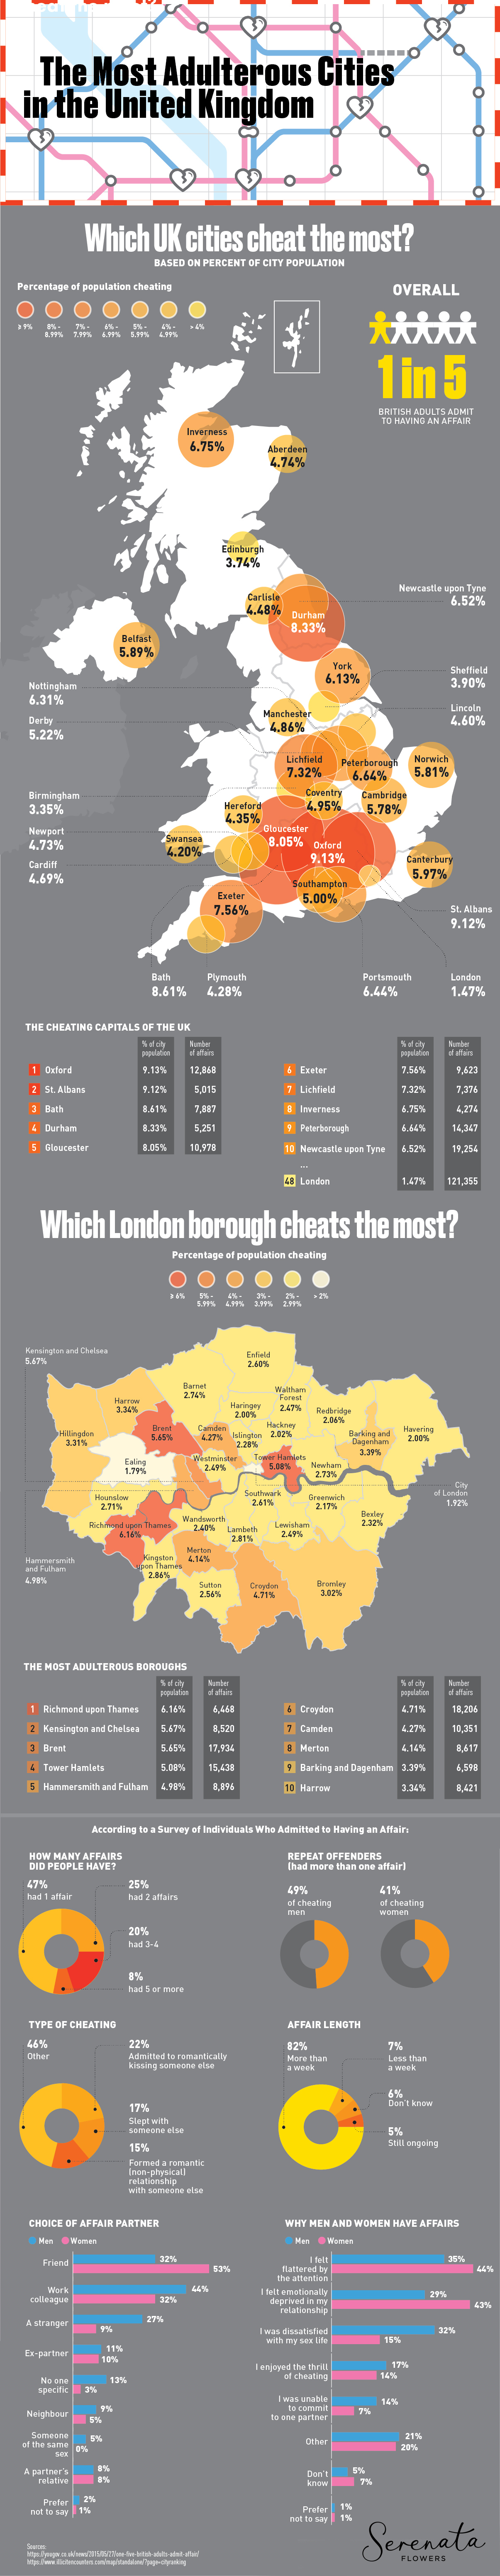 Most Adulterous Cities in United Kingdom - SerenataFlowers.com - Infographic